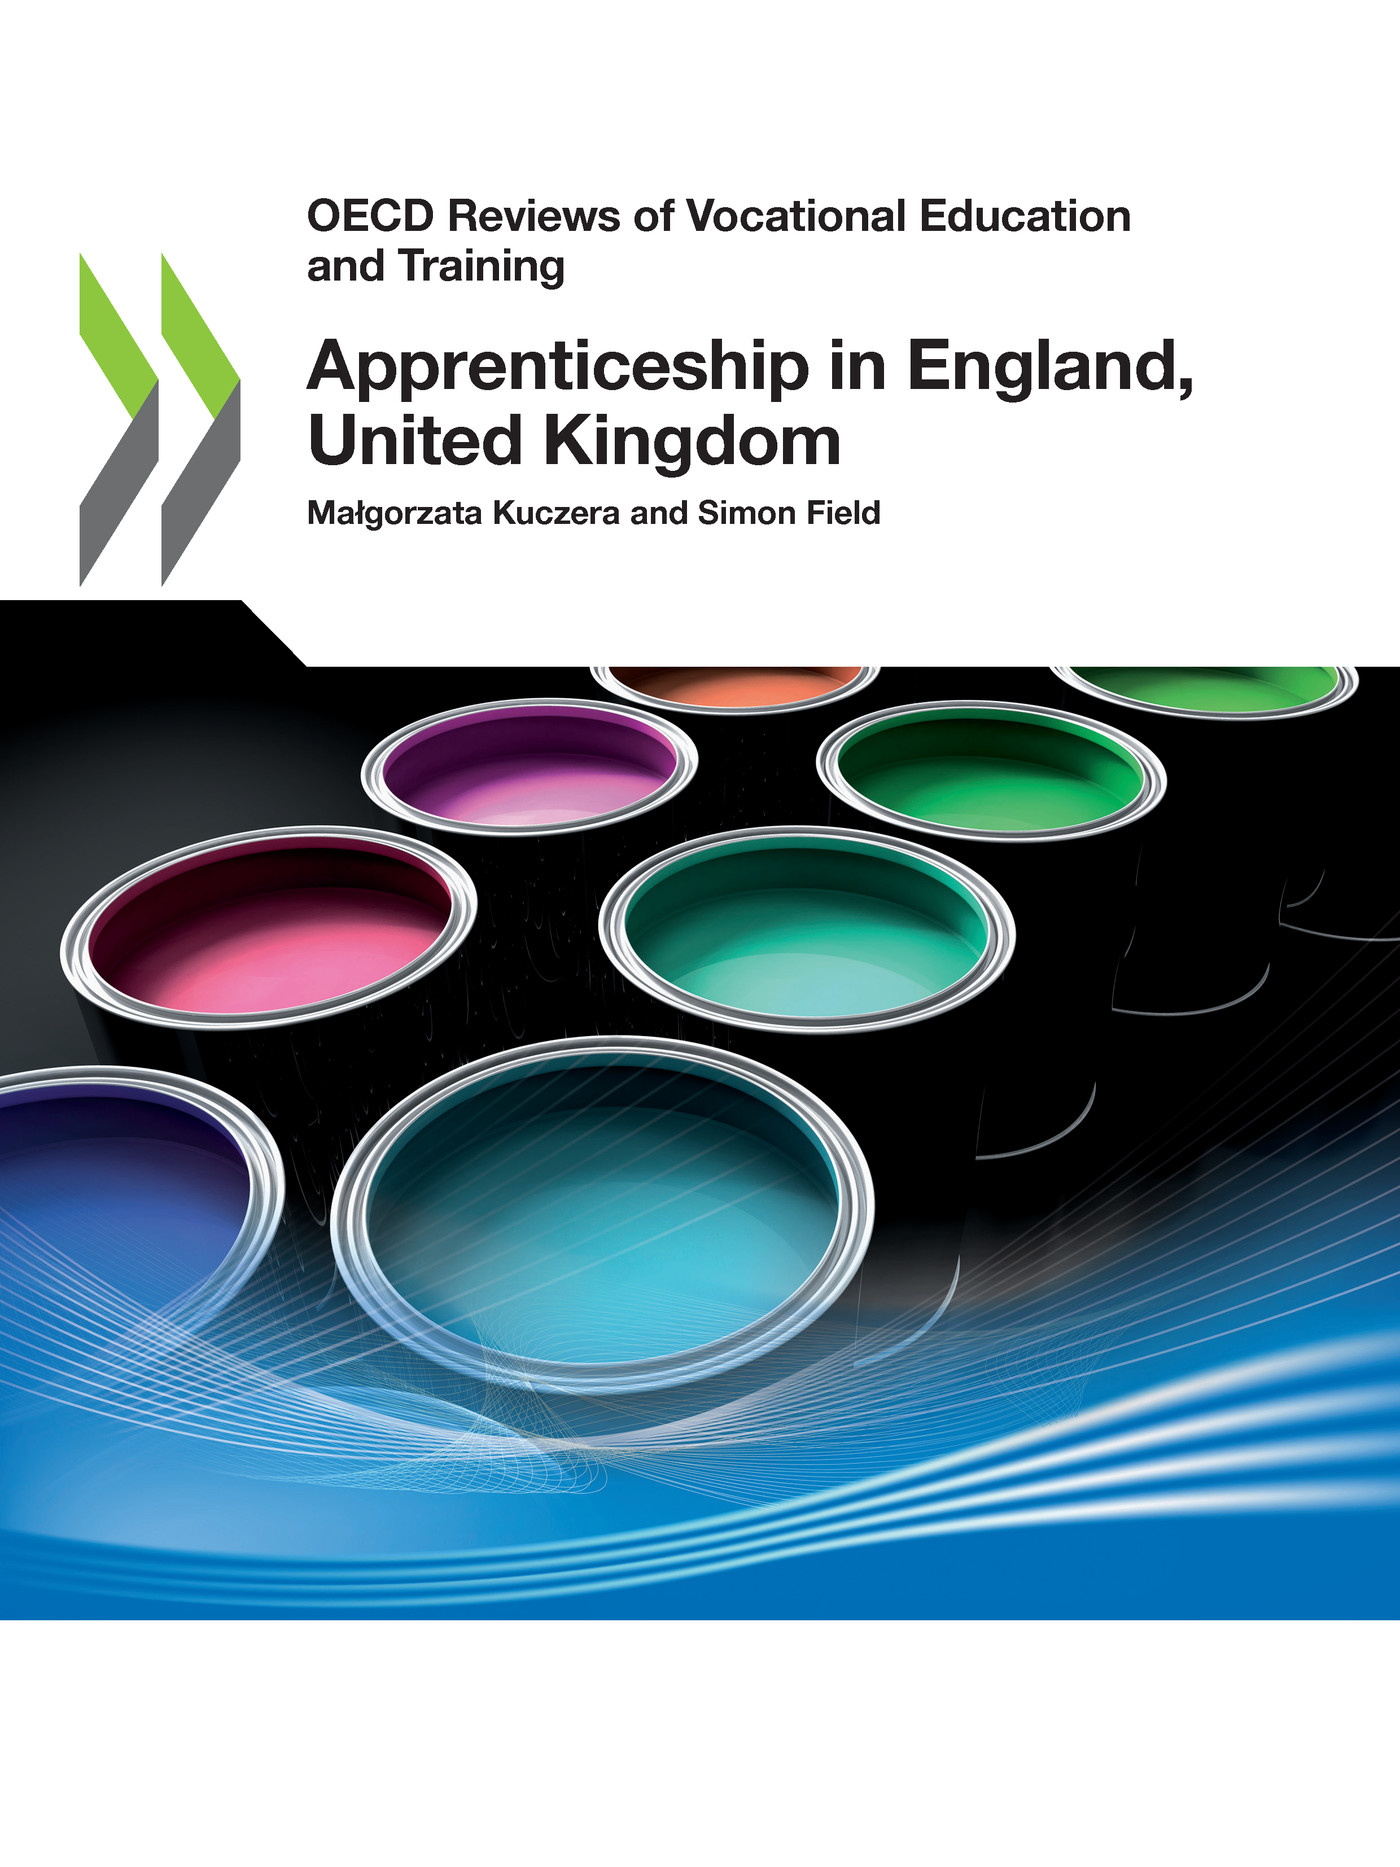 Apprenticeship in England, United Kingdom De  Collectif - OCDE / OECD